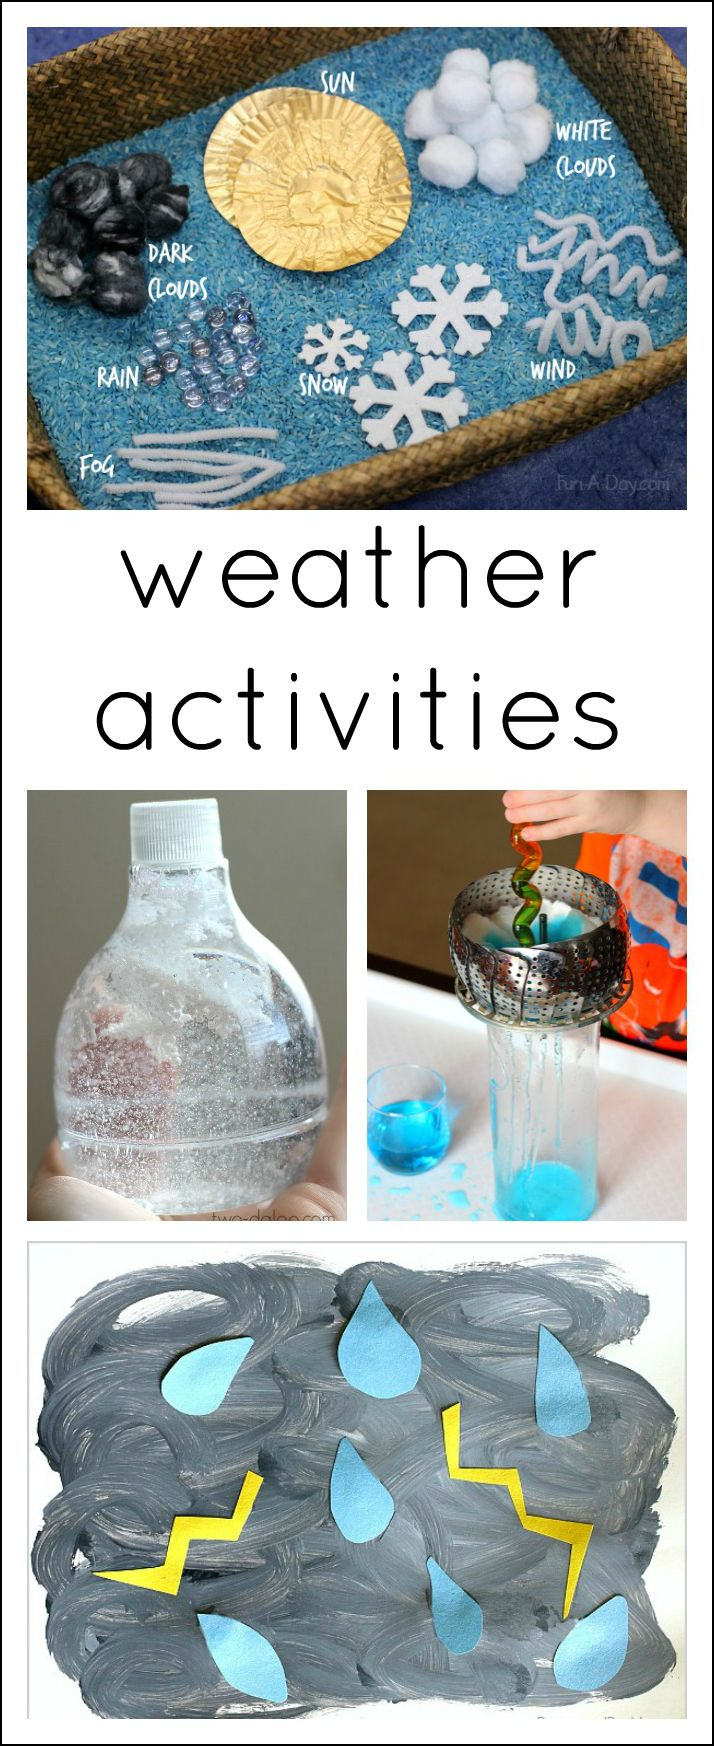 21 great ideas to use when teaching a preschool weather theme. Hands-on activities that are FUN! Would be great for other ages too!